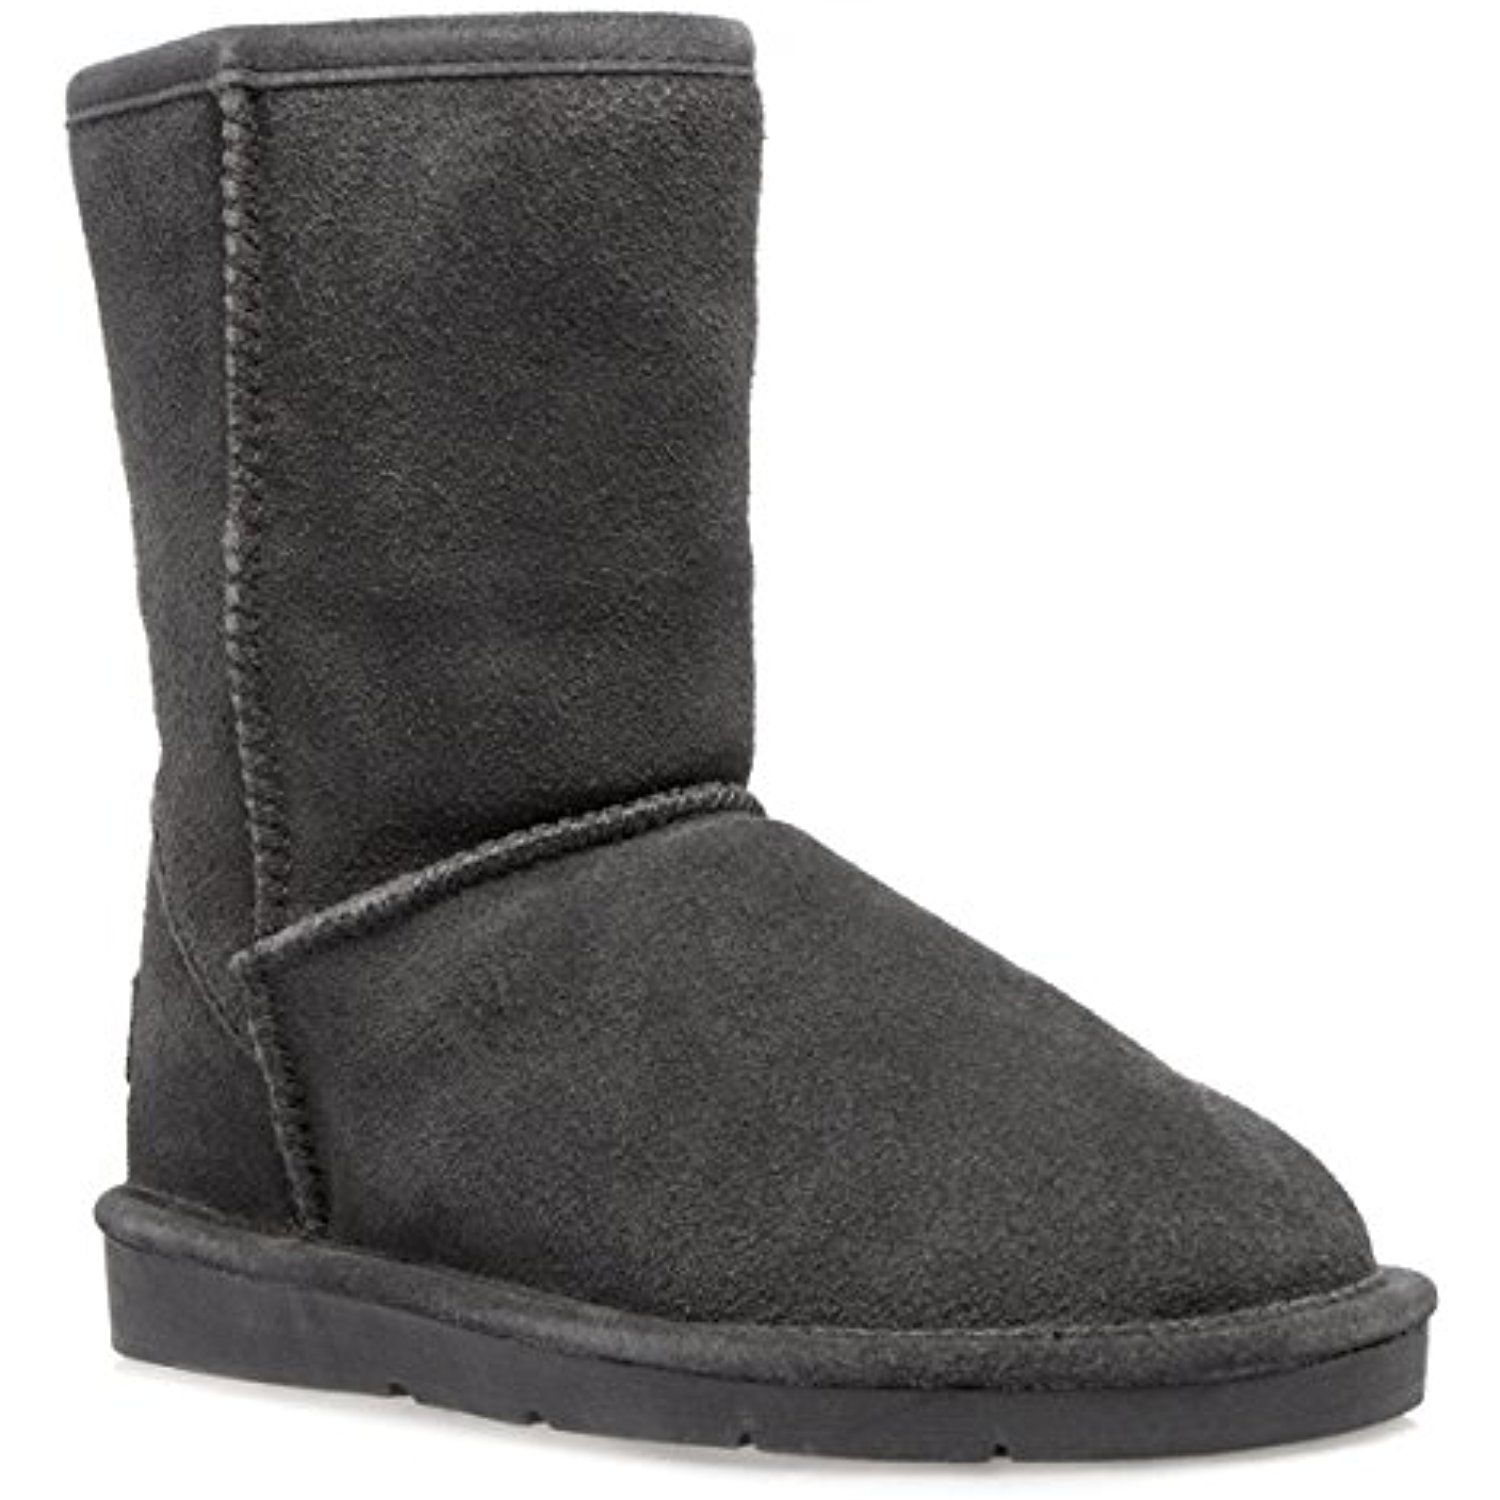 "Womens 47-8825W Round Toe 8"" Classic Short Mid Calf Winter Shearling Fur Boot Gray Suede"